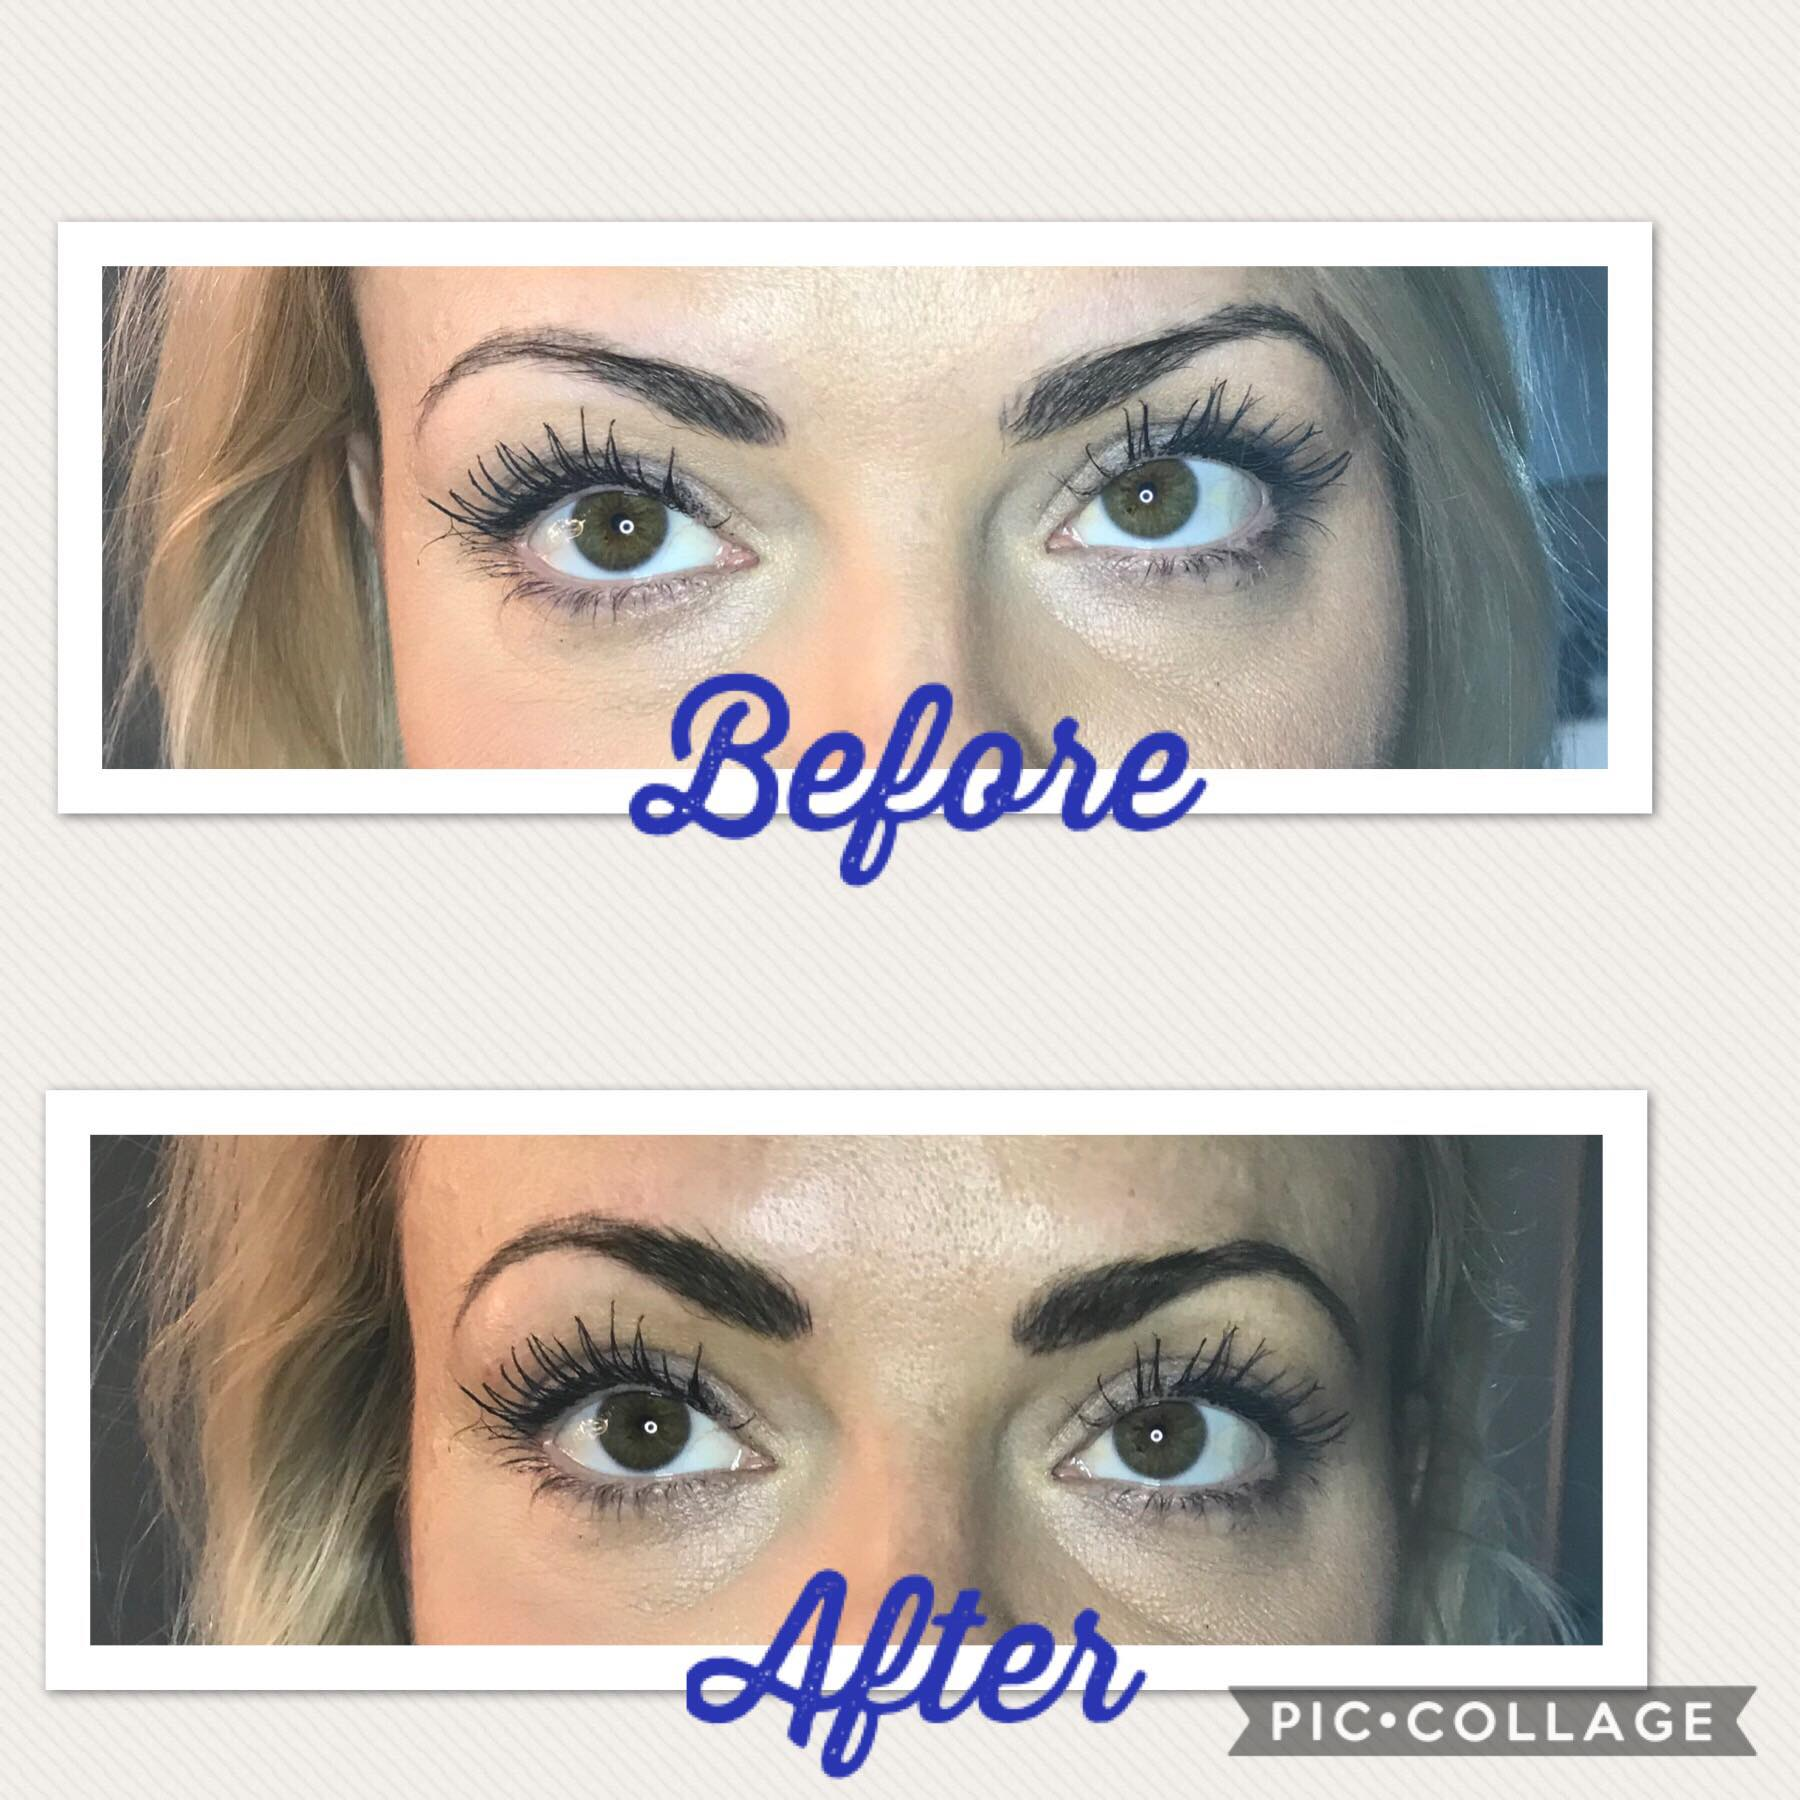 Microblading - At Bodyrx Louisville